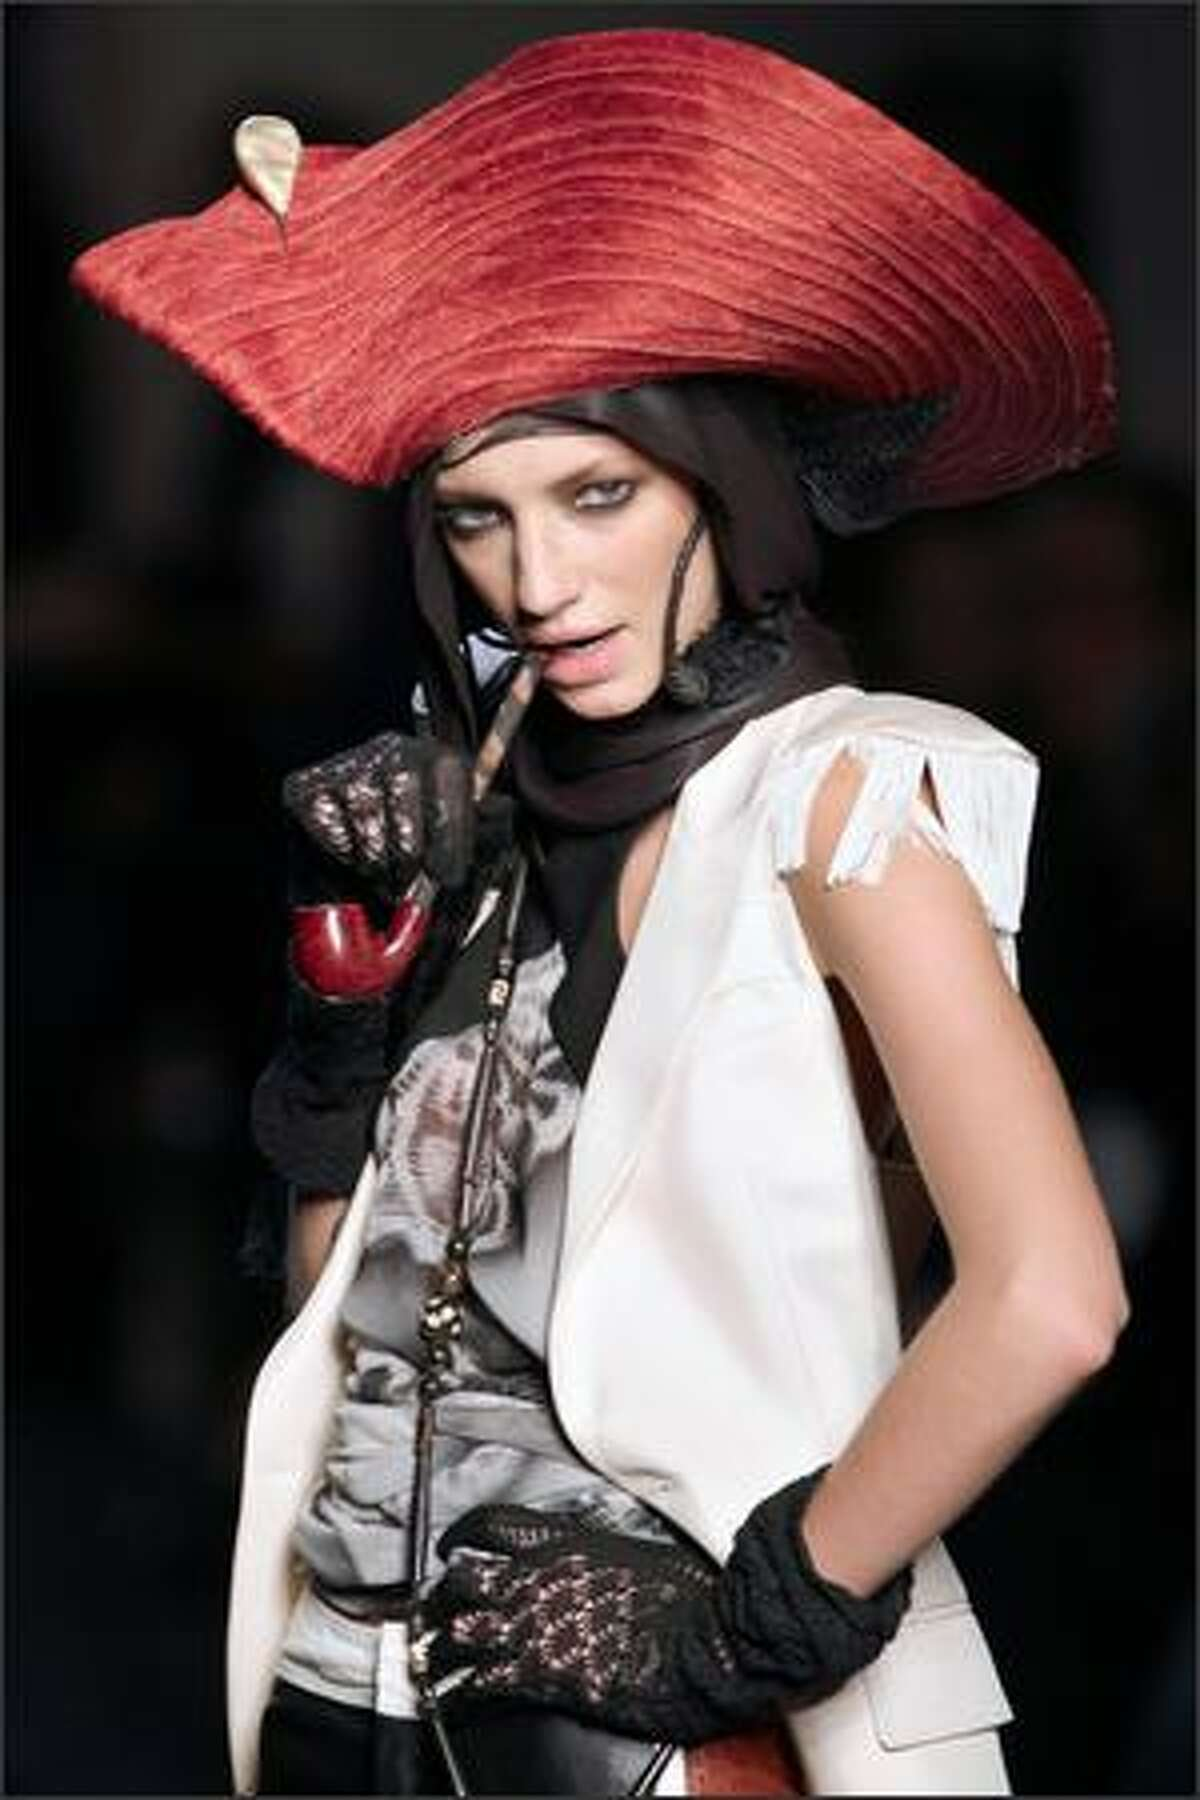 A model presents a creation by French designer Jean-Paul Gaultier during the Spring/Summer 2008 ready-to-wear collection show in Paris.